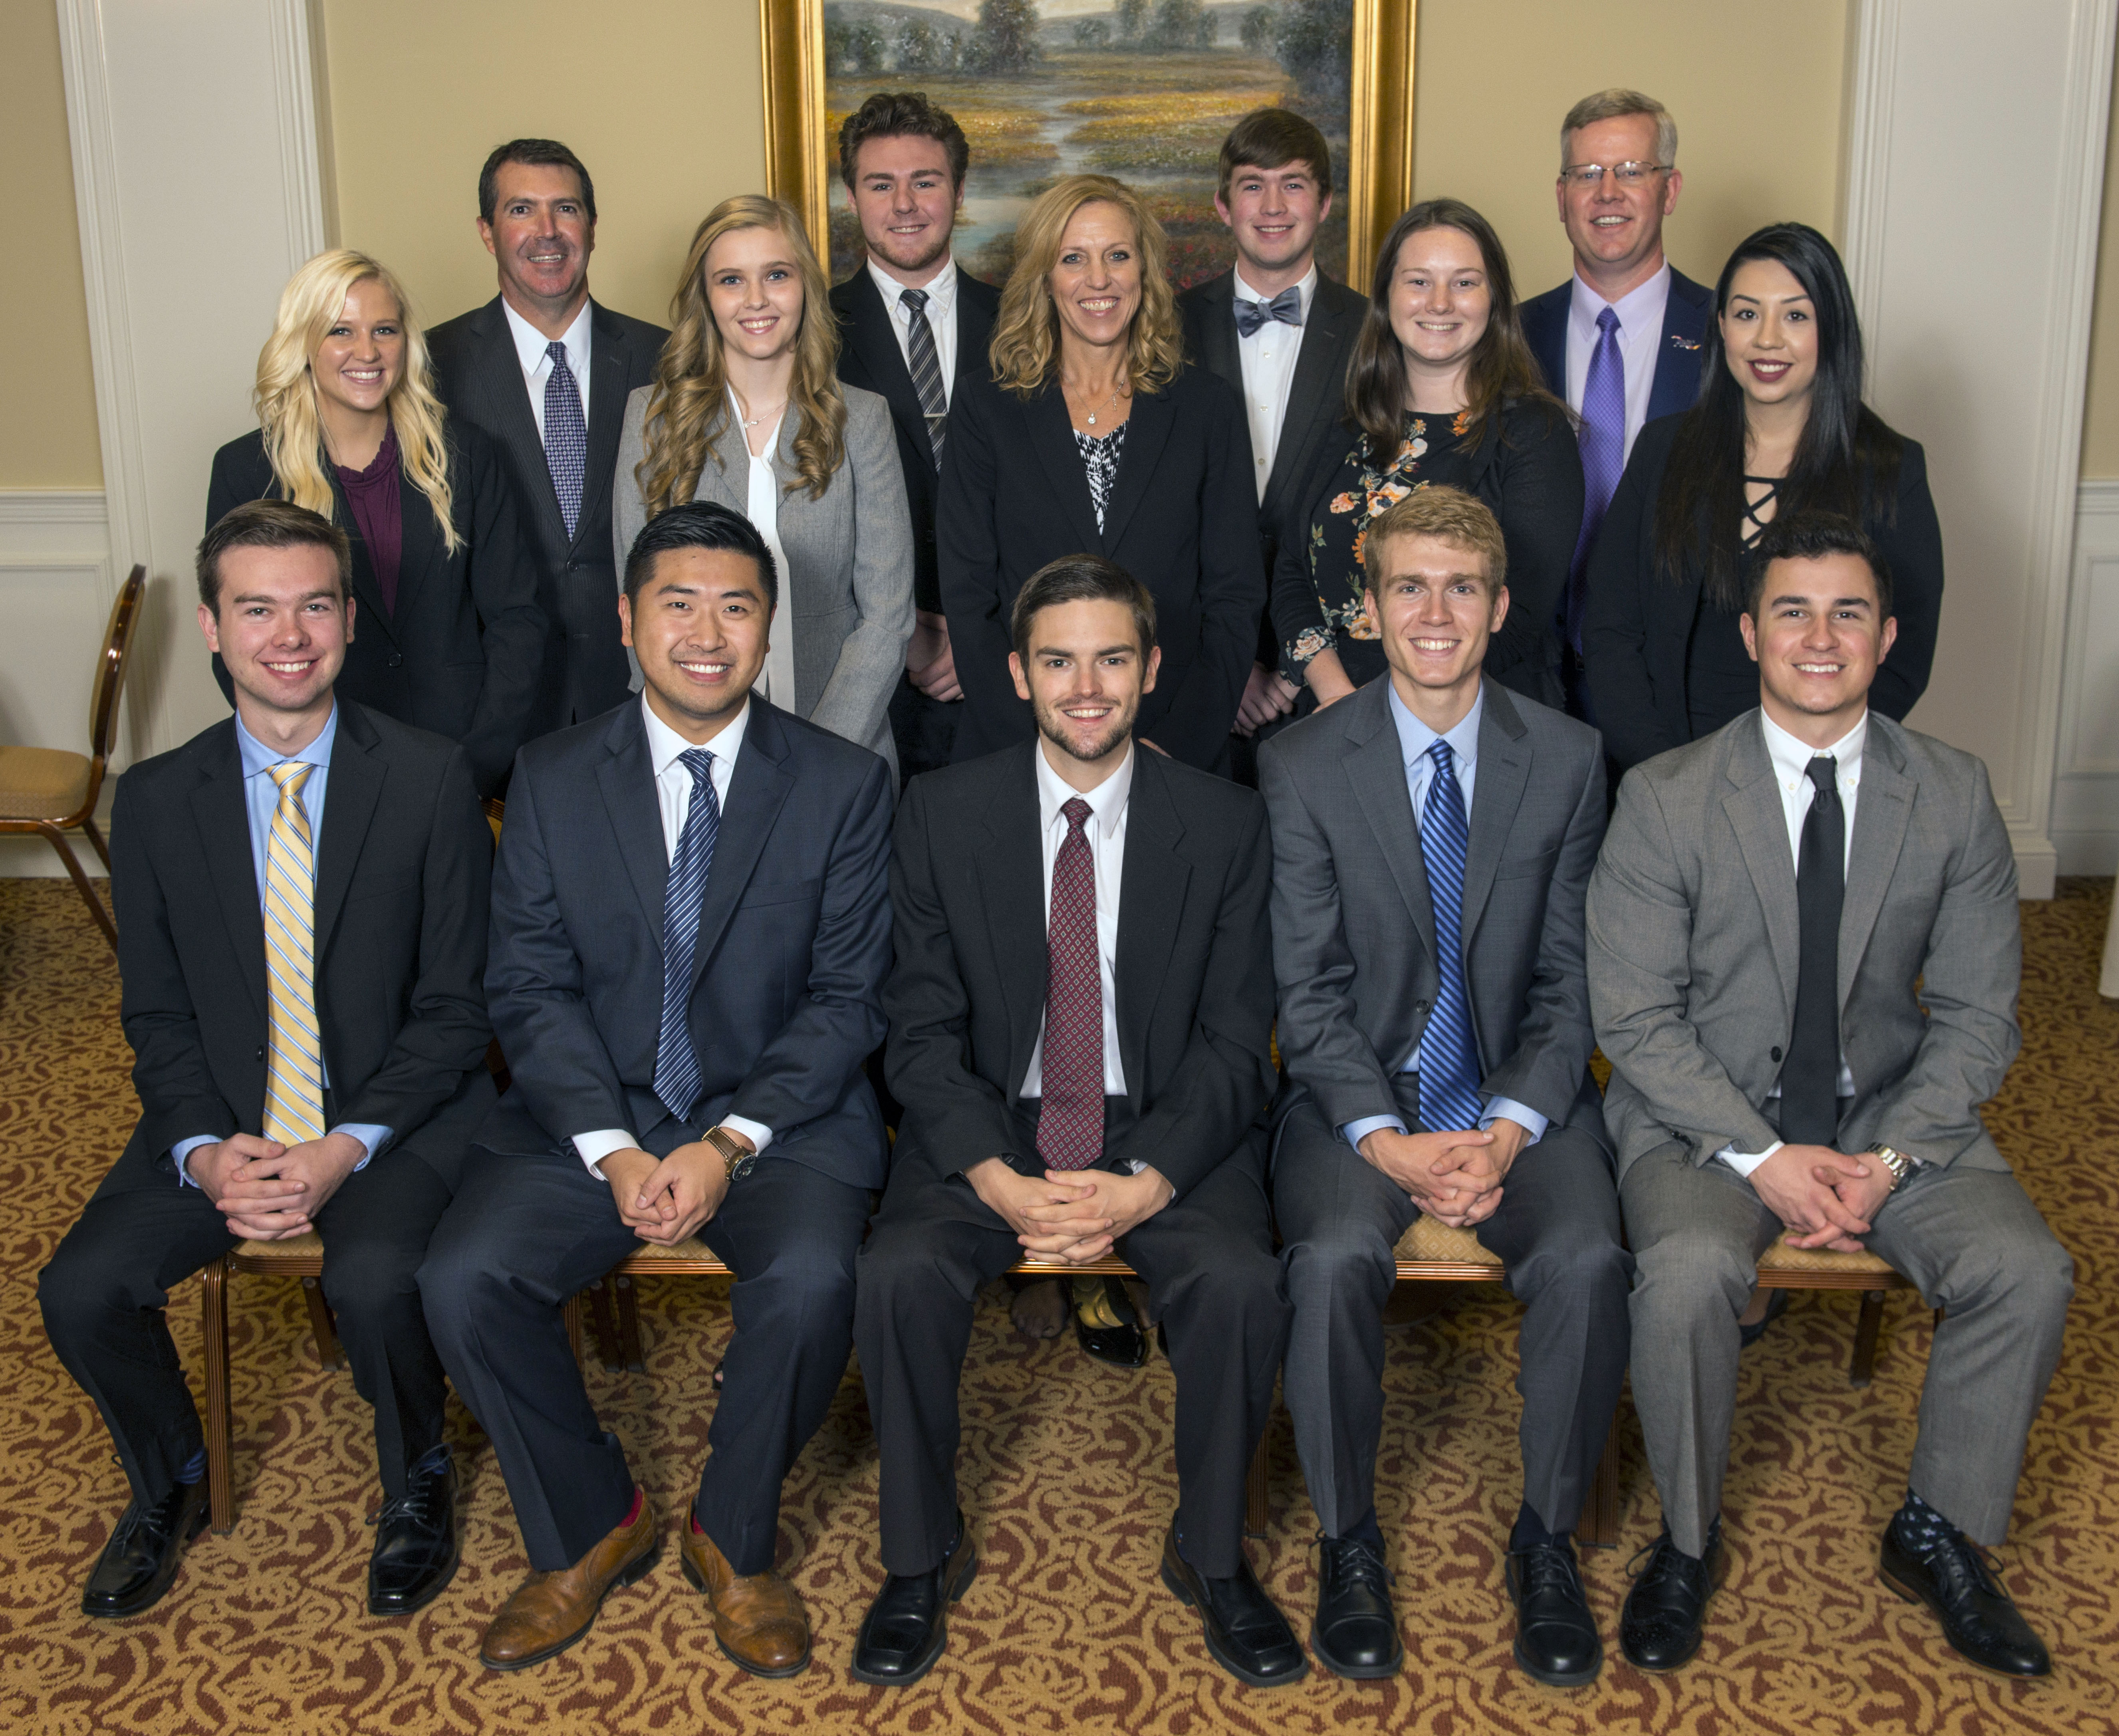 American Bank & Trust of the Cumberlands partnered with the Tennessee Tech College of Business to form a Student Advisory Board for the bank. The 12 students selected by competitive process for the board, along with AB&T executives, are: (front row, left-to-right) Joshua Hitchcock, Raymond Chan, Chase Womble, Nathan Olmstead, Brady Morgan (back row, left-to-right) Molly Williams, Marty Maynord of AB&T, Serena Campeau, Maverick Melton, Wendi Wheeler, Jonathan Terry, Victoria Chaplin, Ryan Smith of AB&T, and Jessica Miranda.